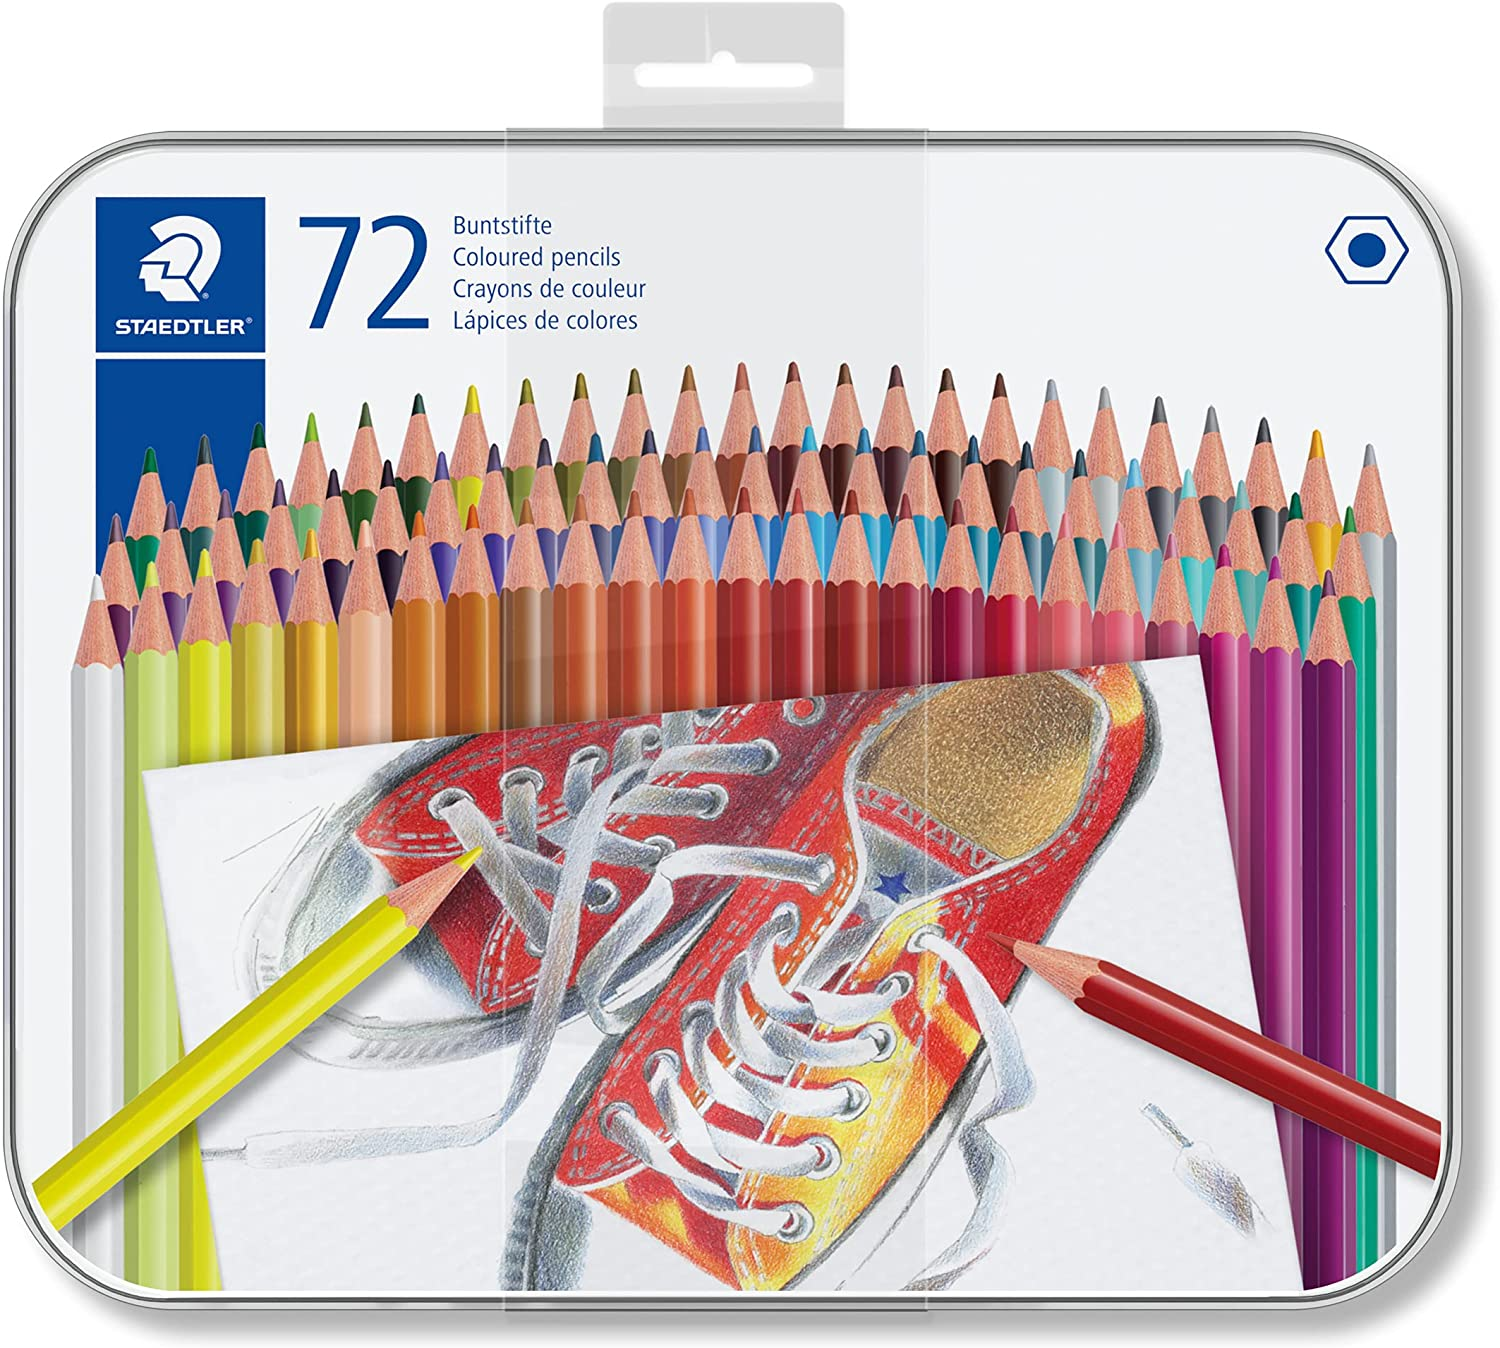 STAEDTLER 175 M72 Coloured Pencils, Assorted Colour, Pack of 72